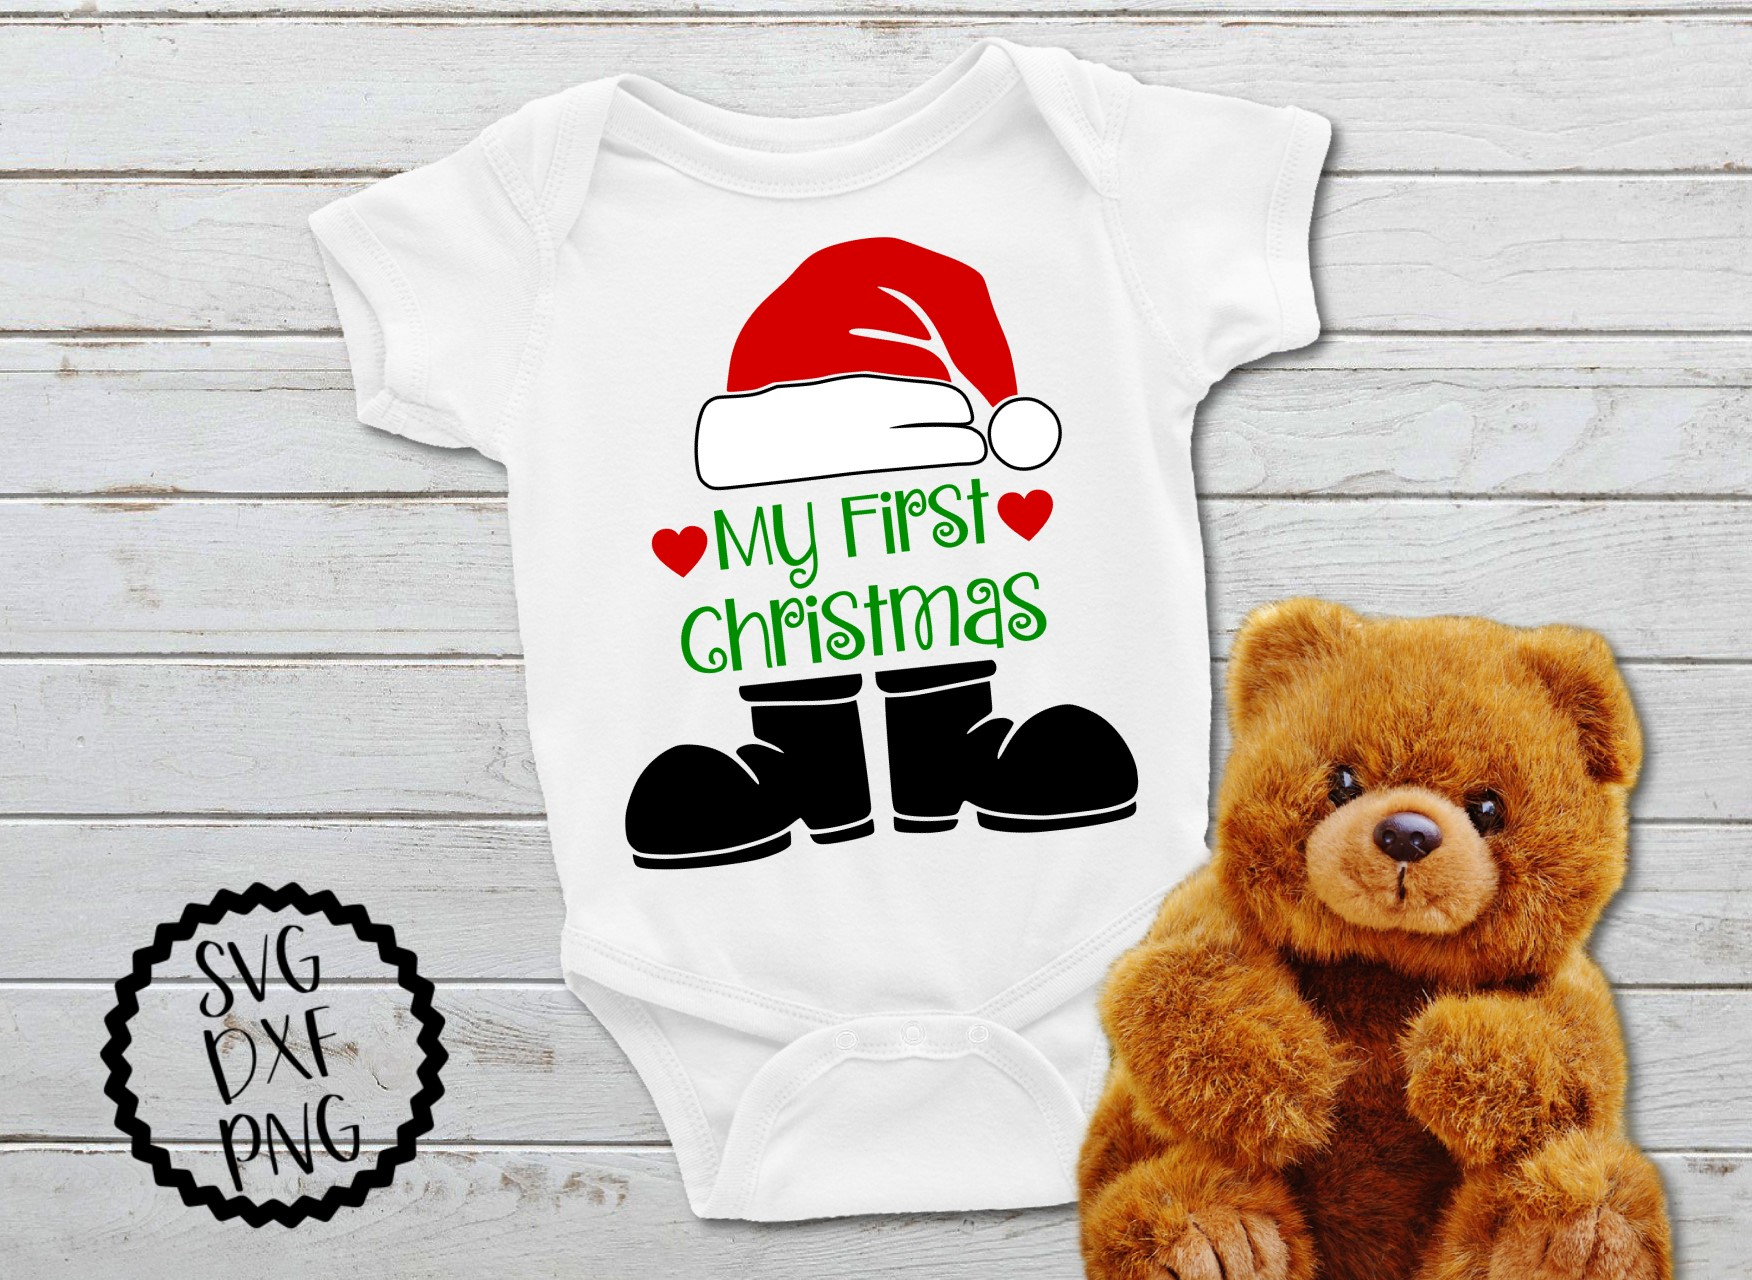 Download Free My First Christmas Santa Claus Svg Graphic By Printsofpop Creative Fabrica for Cricut Explore, Silhouette and other cutting machines.